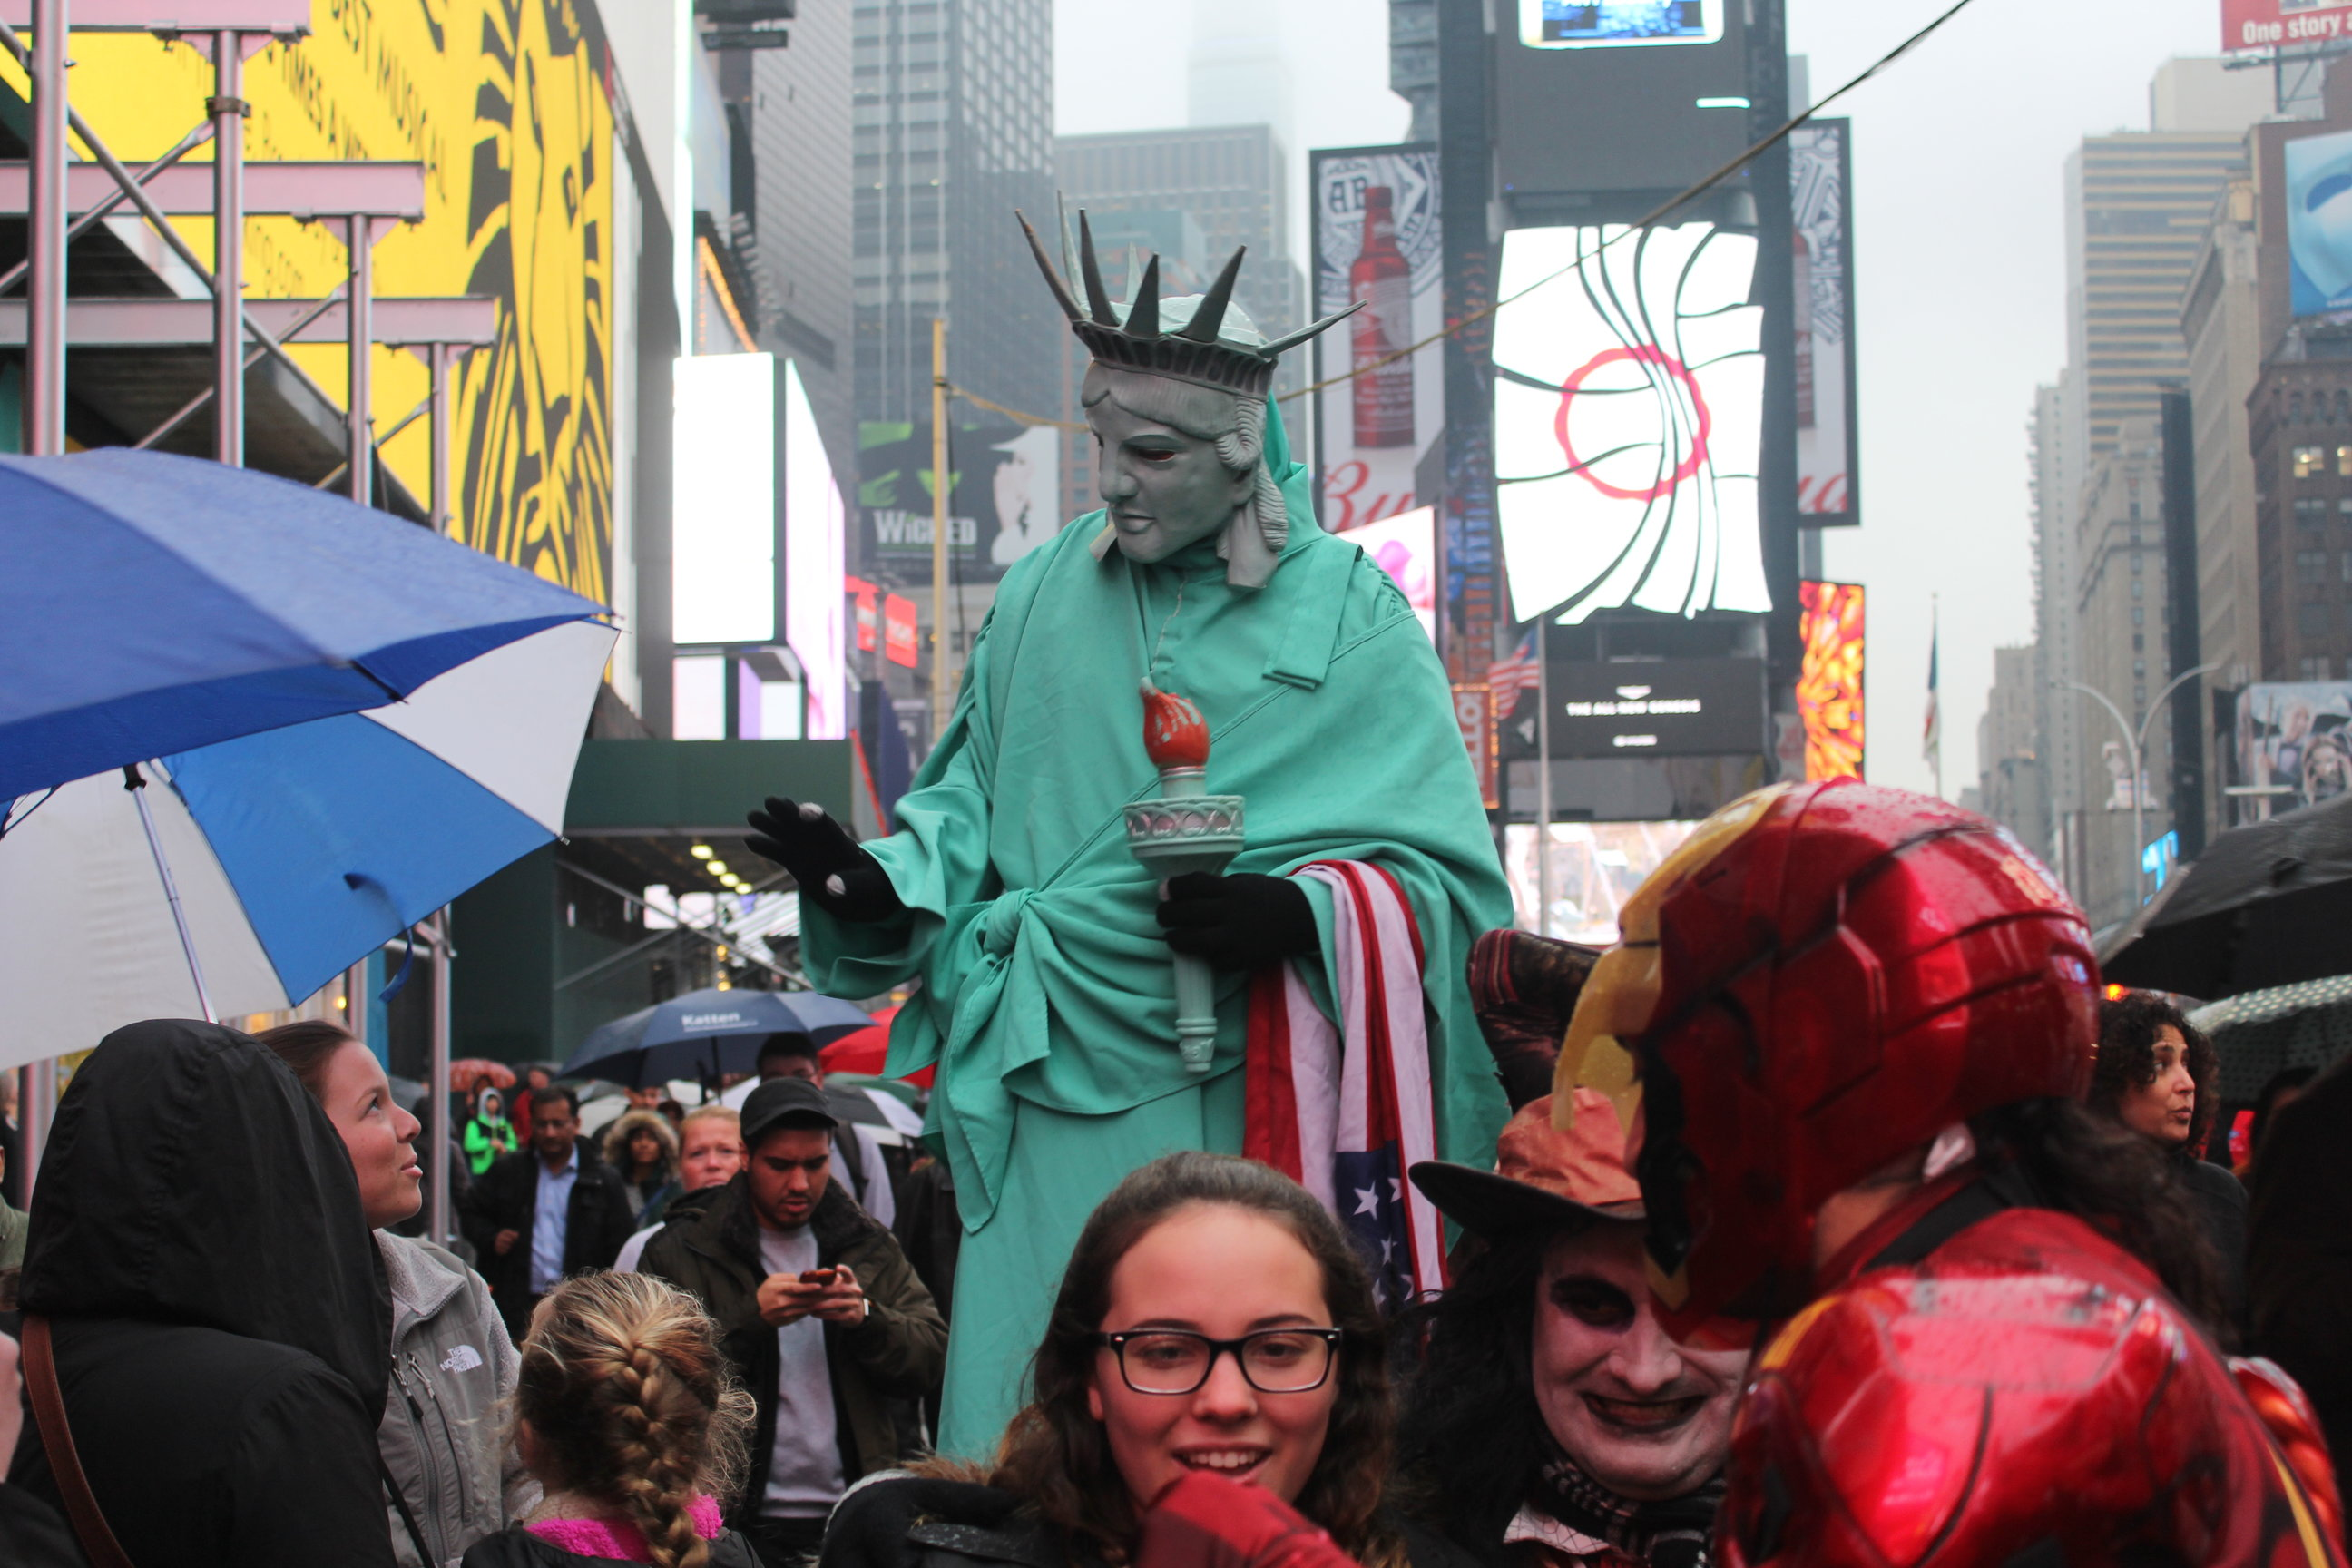 Estatua de Times Square